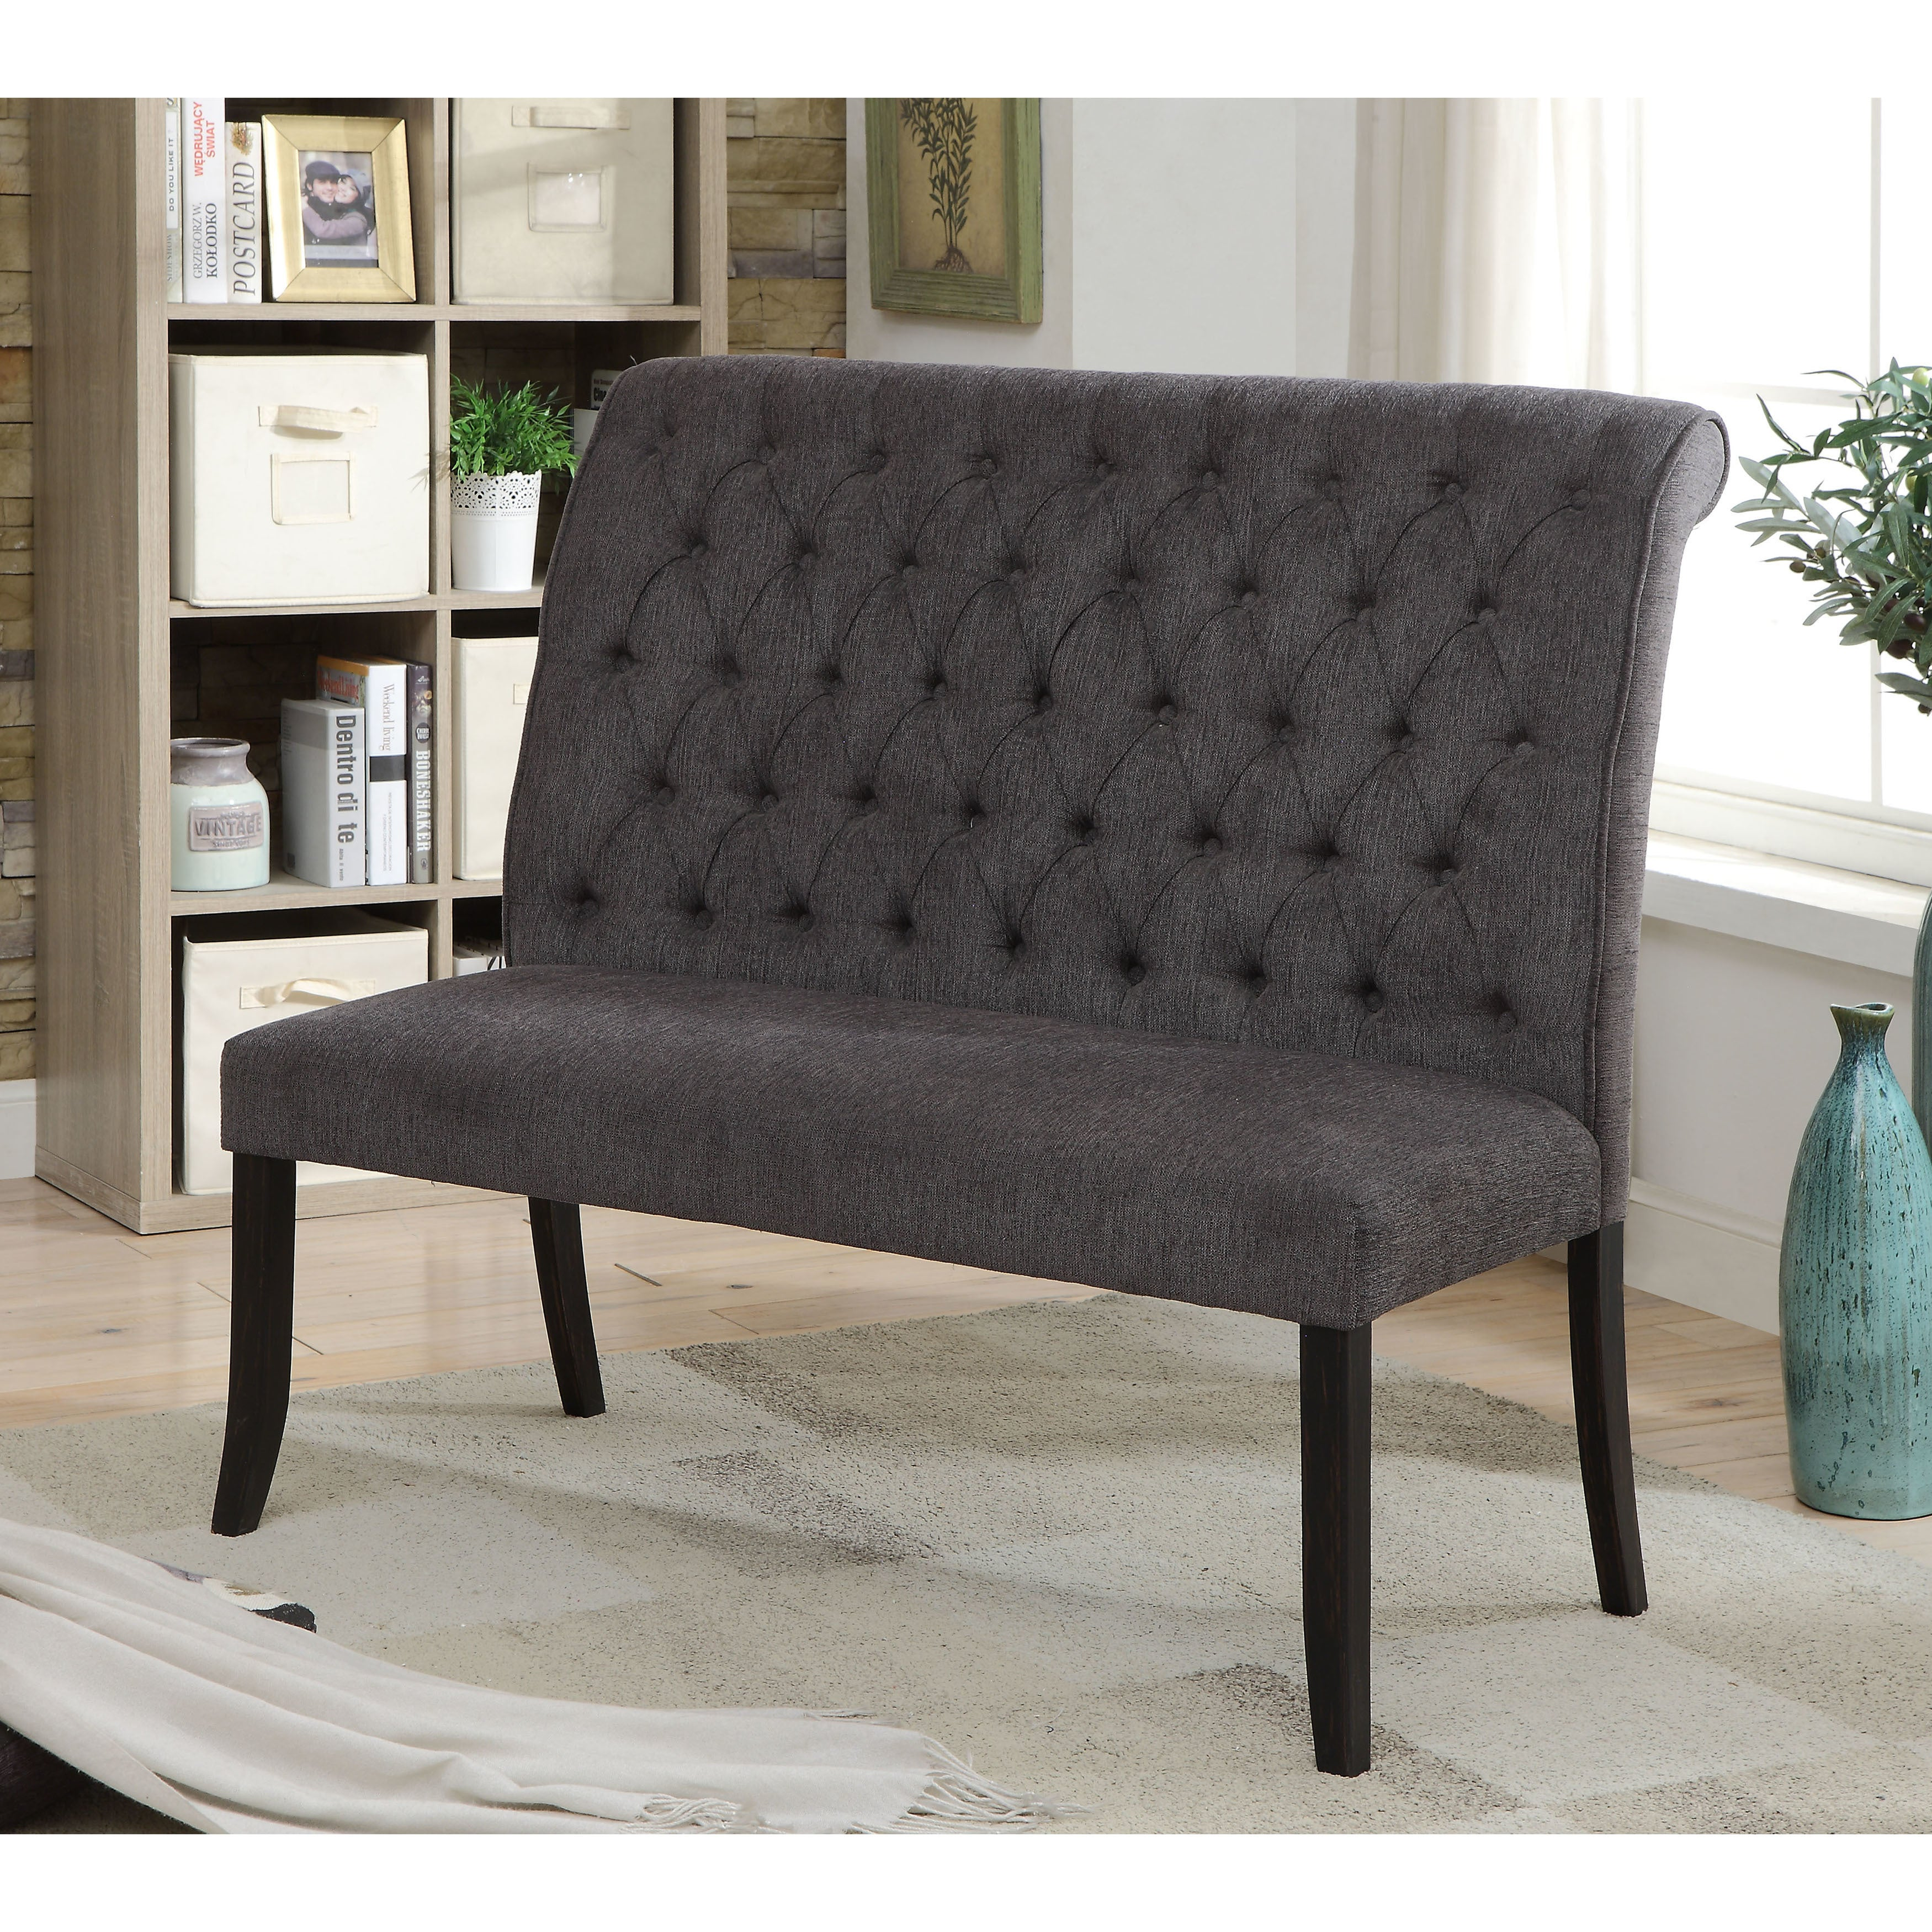 Furniture Of America Sheila Contemporary Button Tufted Chenille 2 Seater Dining  Bench   Free Shipping Today   Overstock.com   23103486